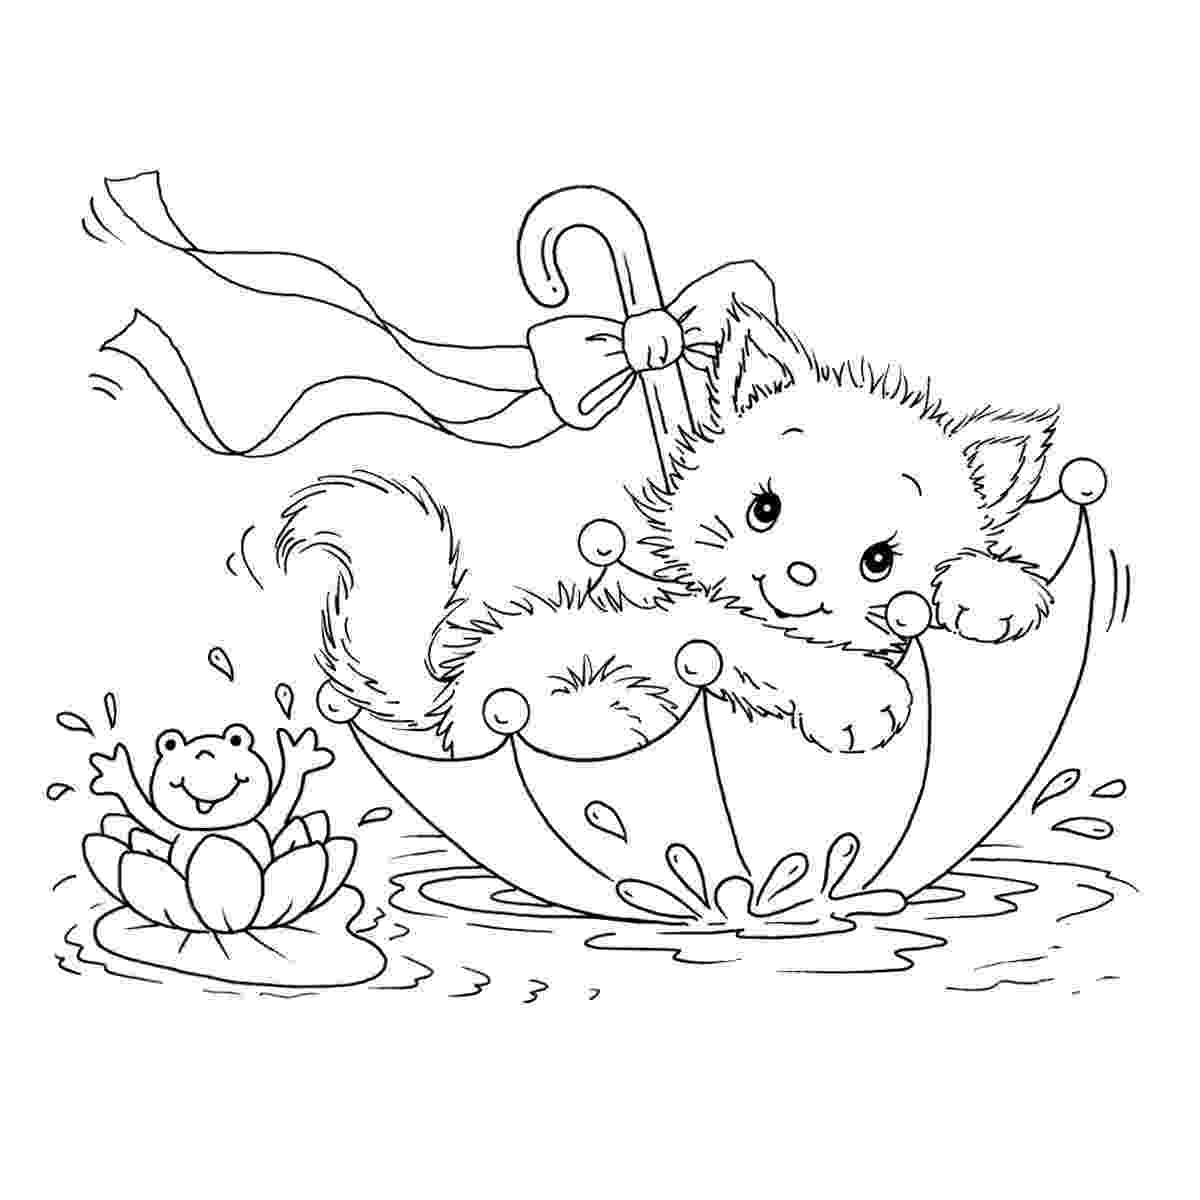 cat pictures for kids to color pictures of cats to colour cartoon cat drawing simple kids to for cat pictures color